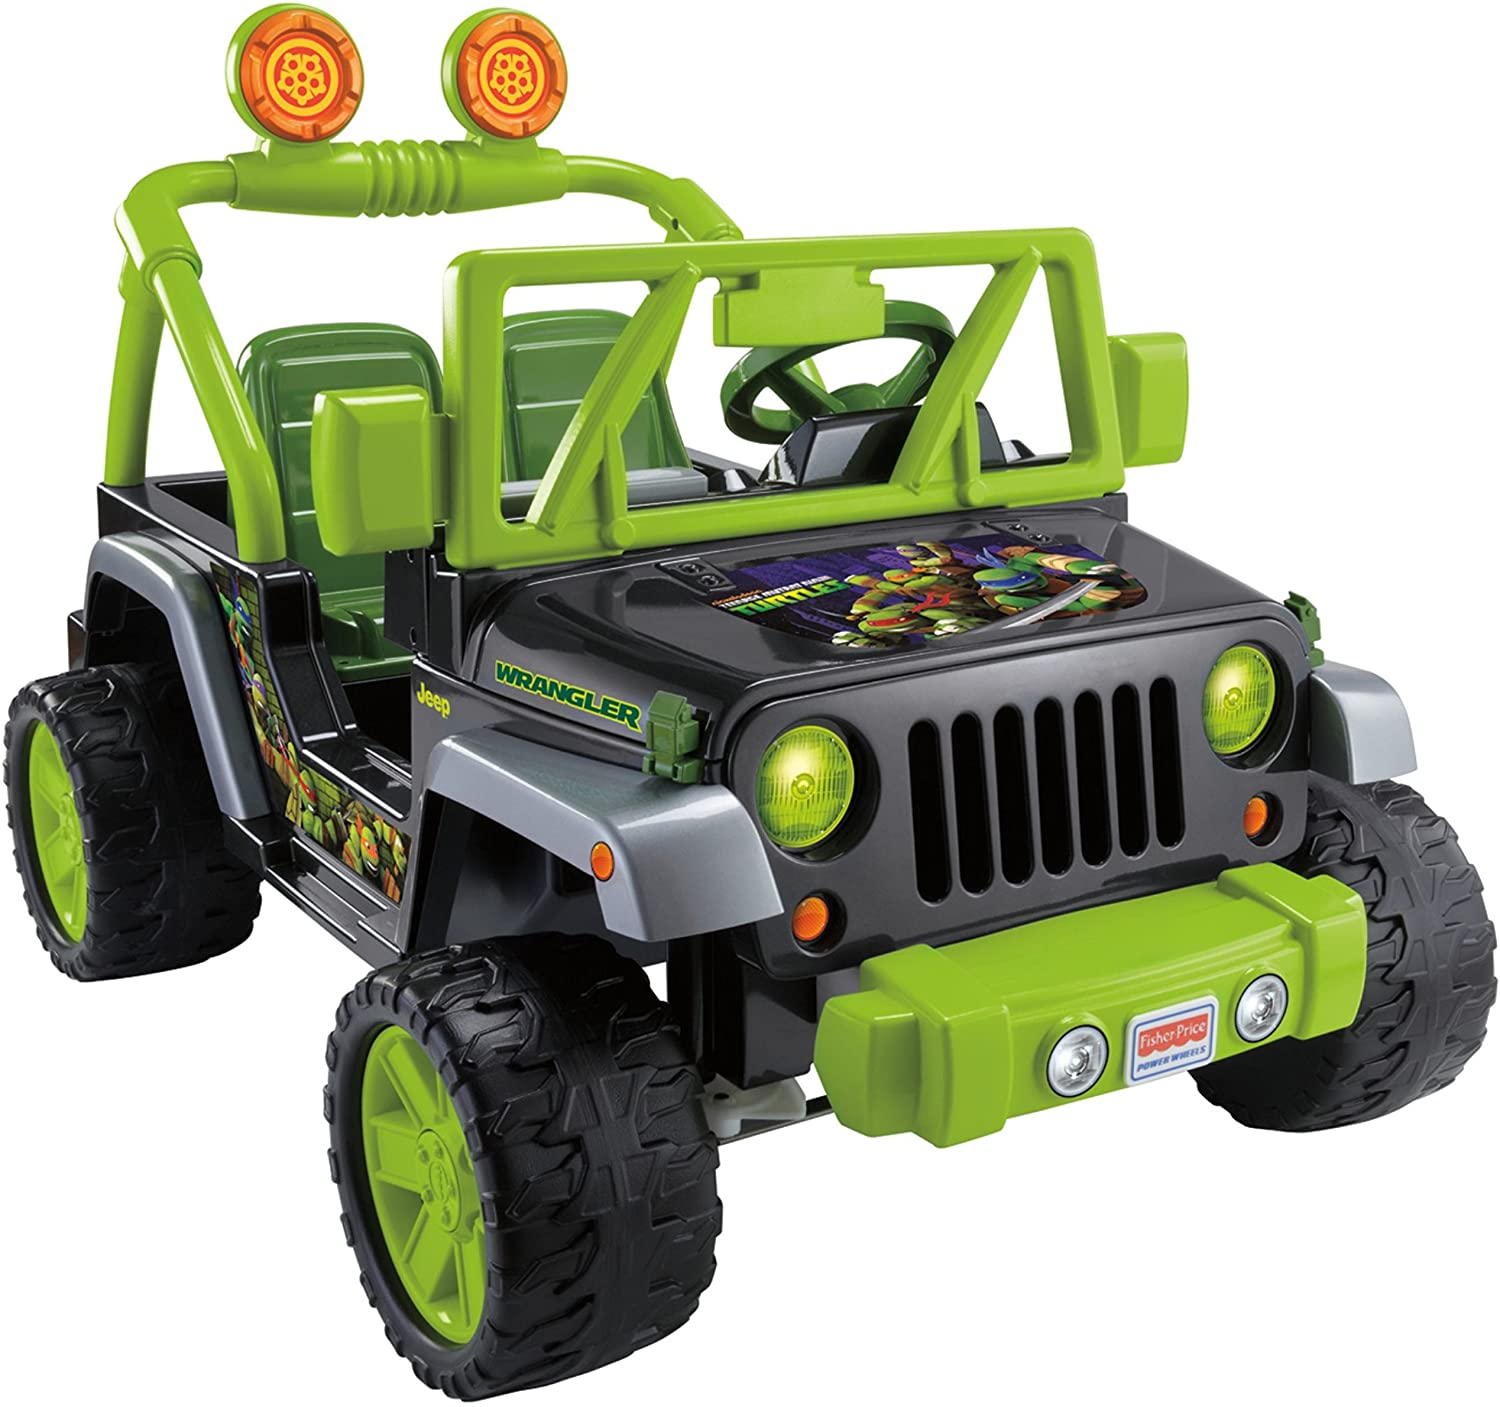 Amazon.com: Fisher Price Jeep Wrangler de las Tortugas Ninja ...